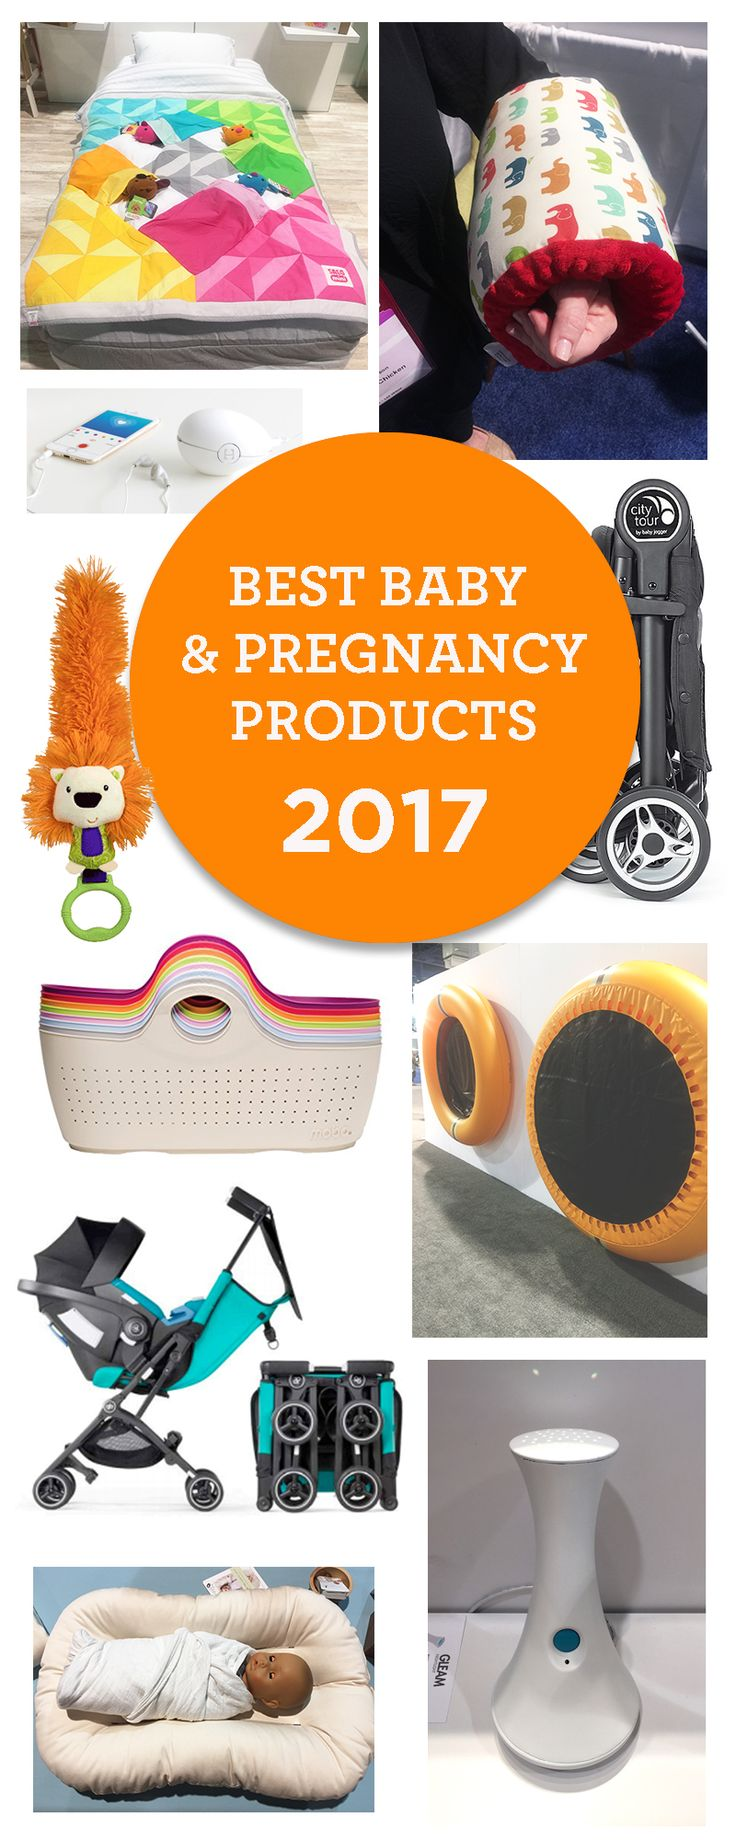 A sneak peek at the best baby & pregnancy products for 2017. Some of this gear will blow your mind. via @pregnantchicken